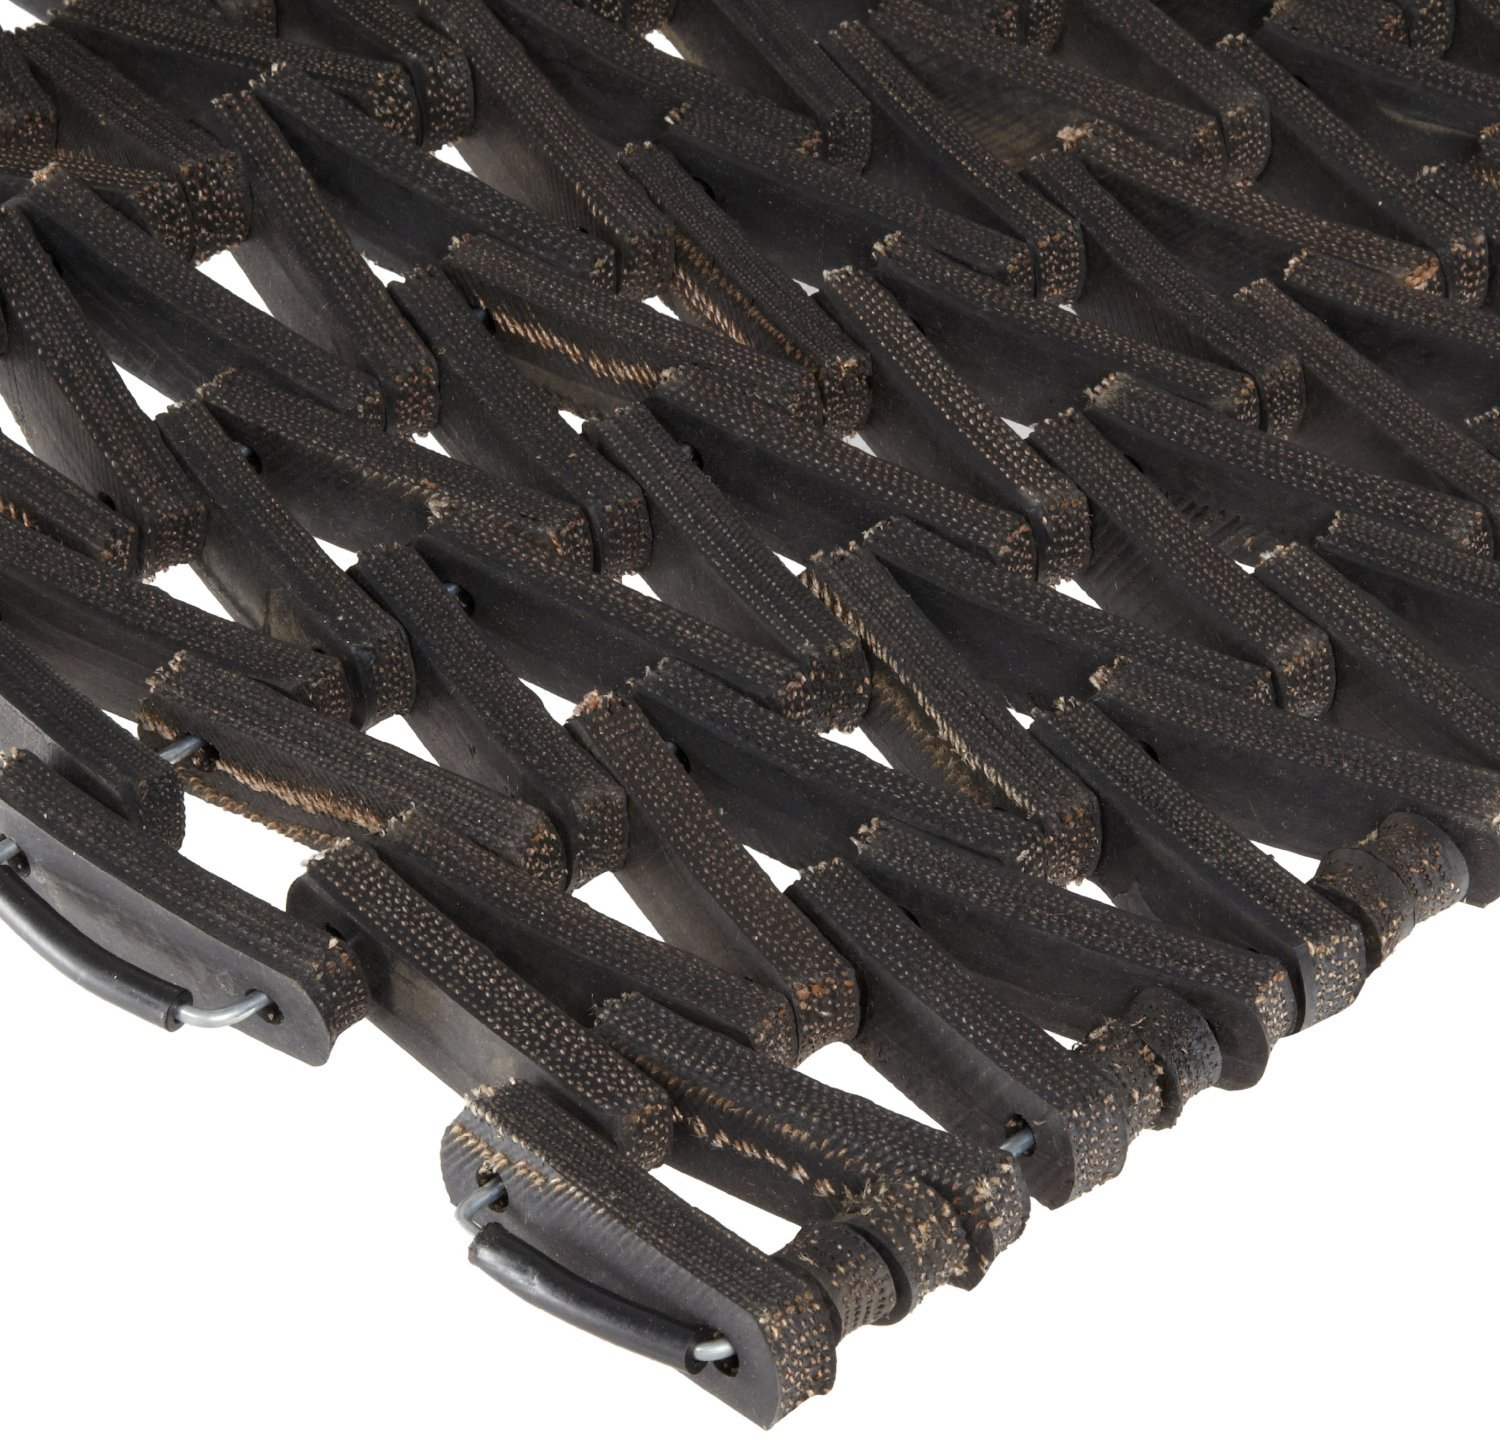 Durable Corporation 108 Recylcled Tire-Link Anti-Fatigue Mat, for Wet Areas, Herringbone Weave, 36'' Width x 120'' Length x 5/8'' Thickness, Black